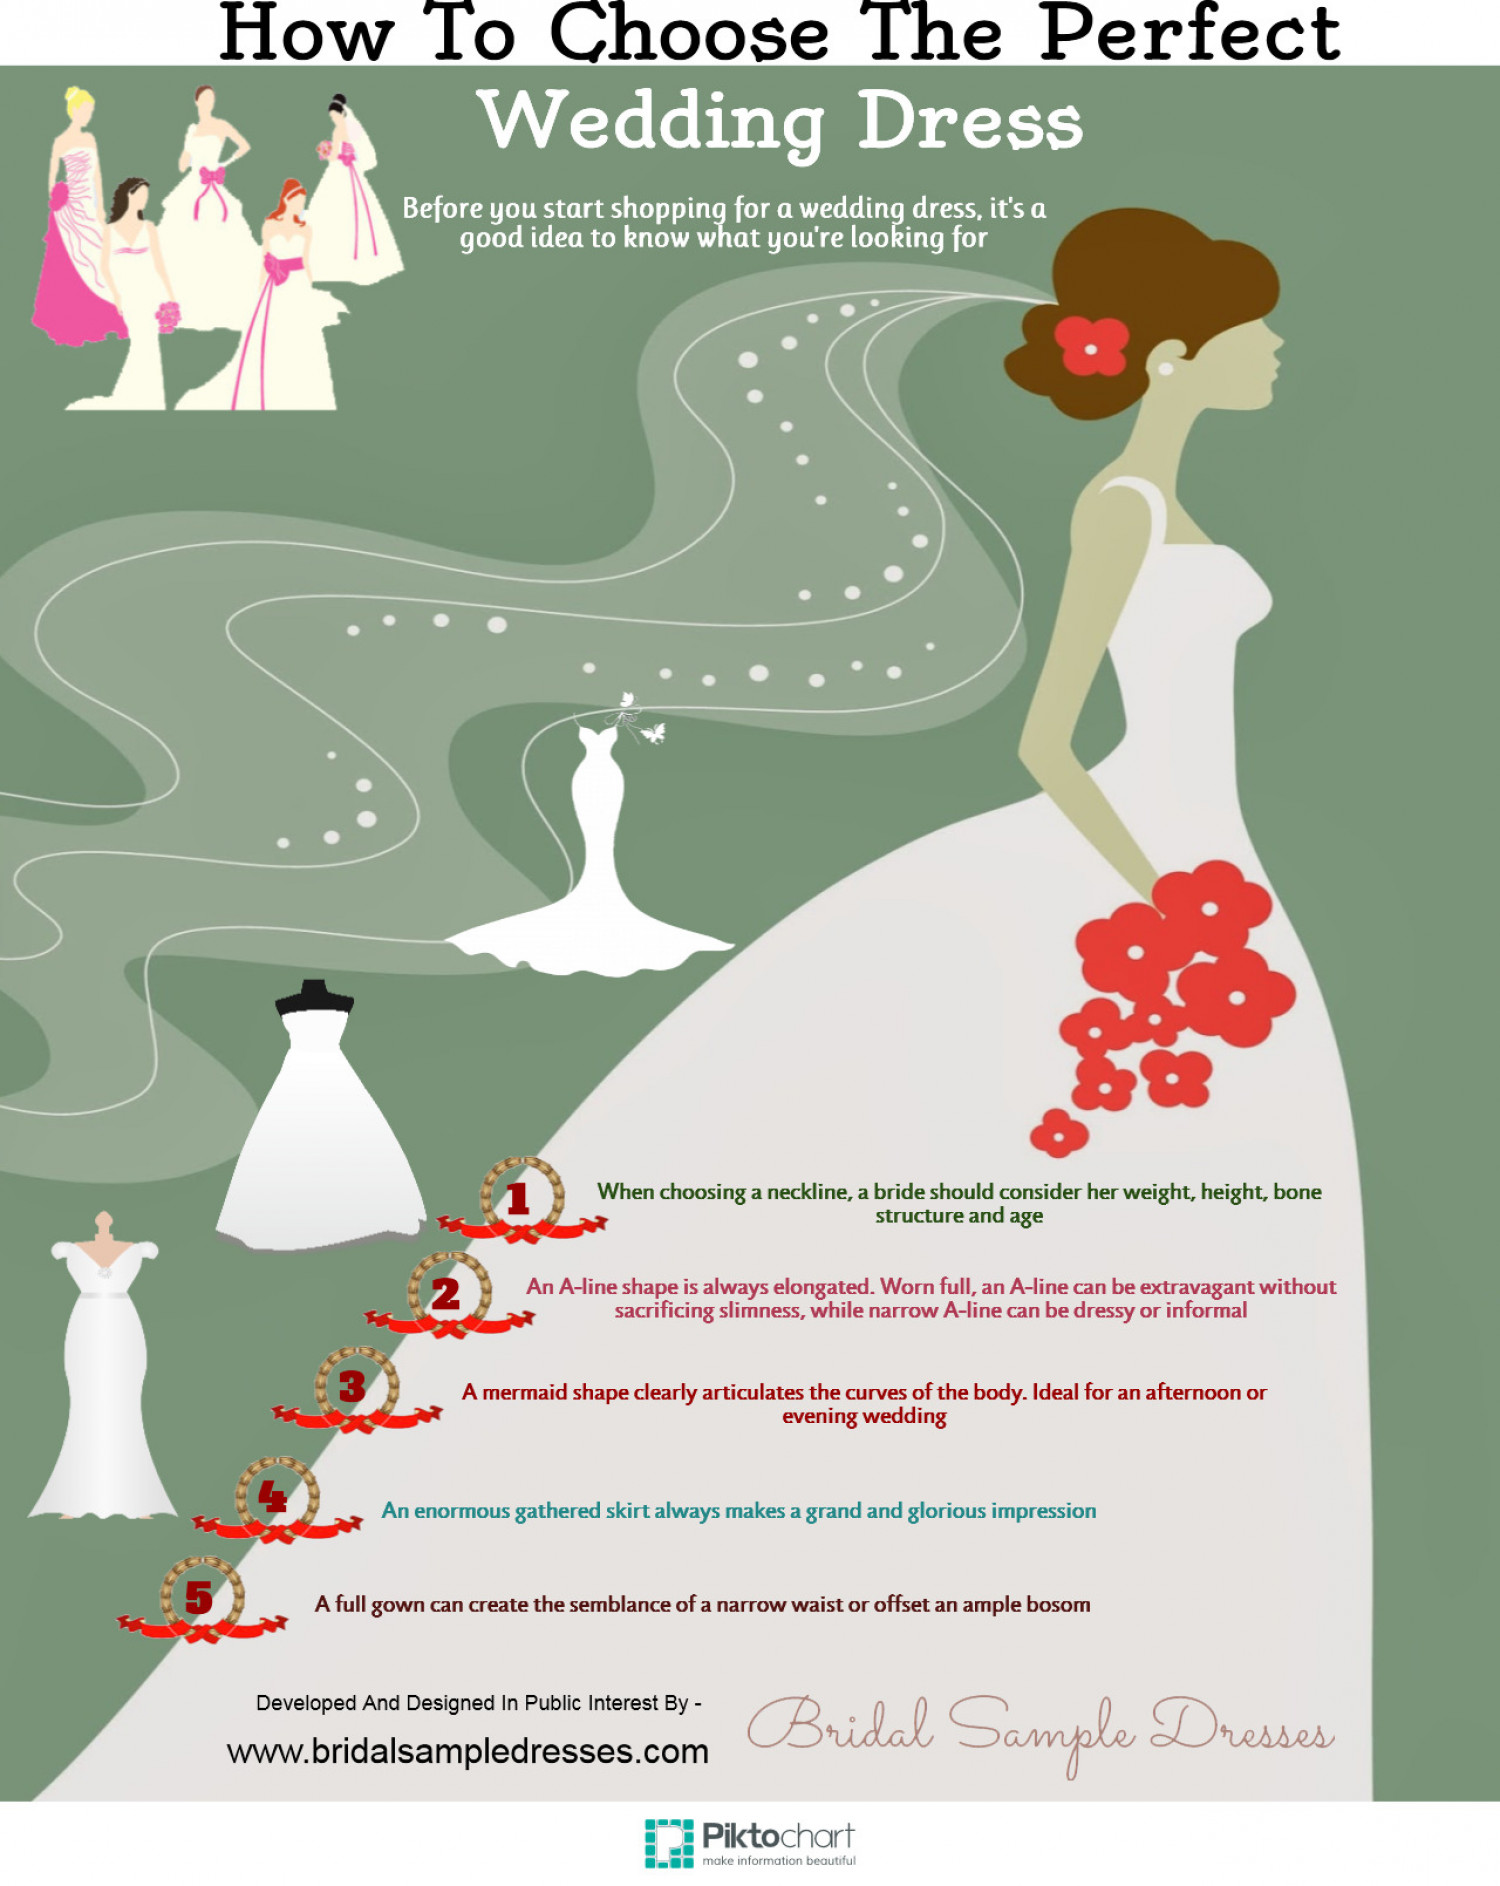 How To Choose The Perfect Wedding Dress Infographic